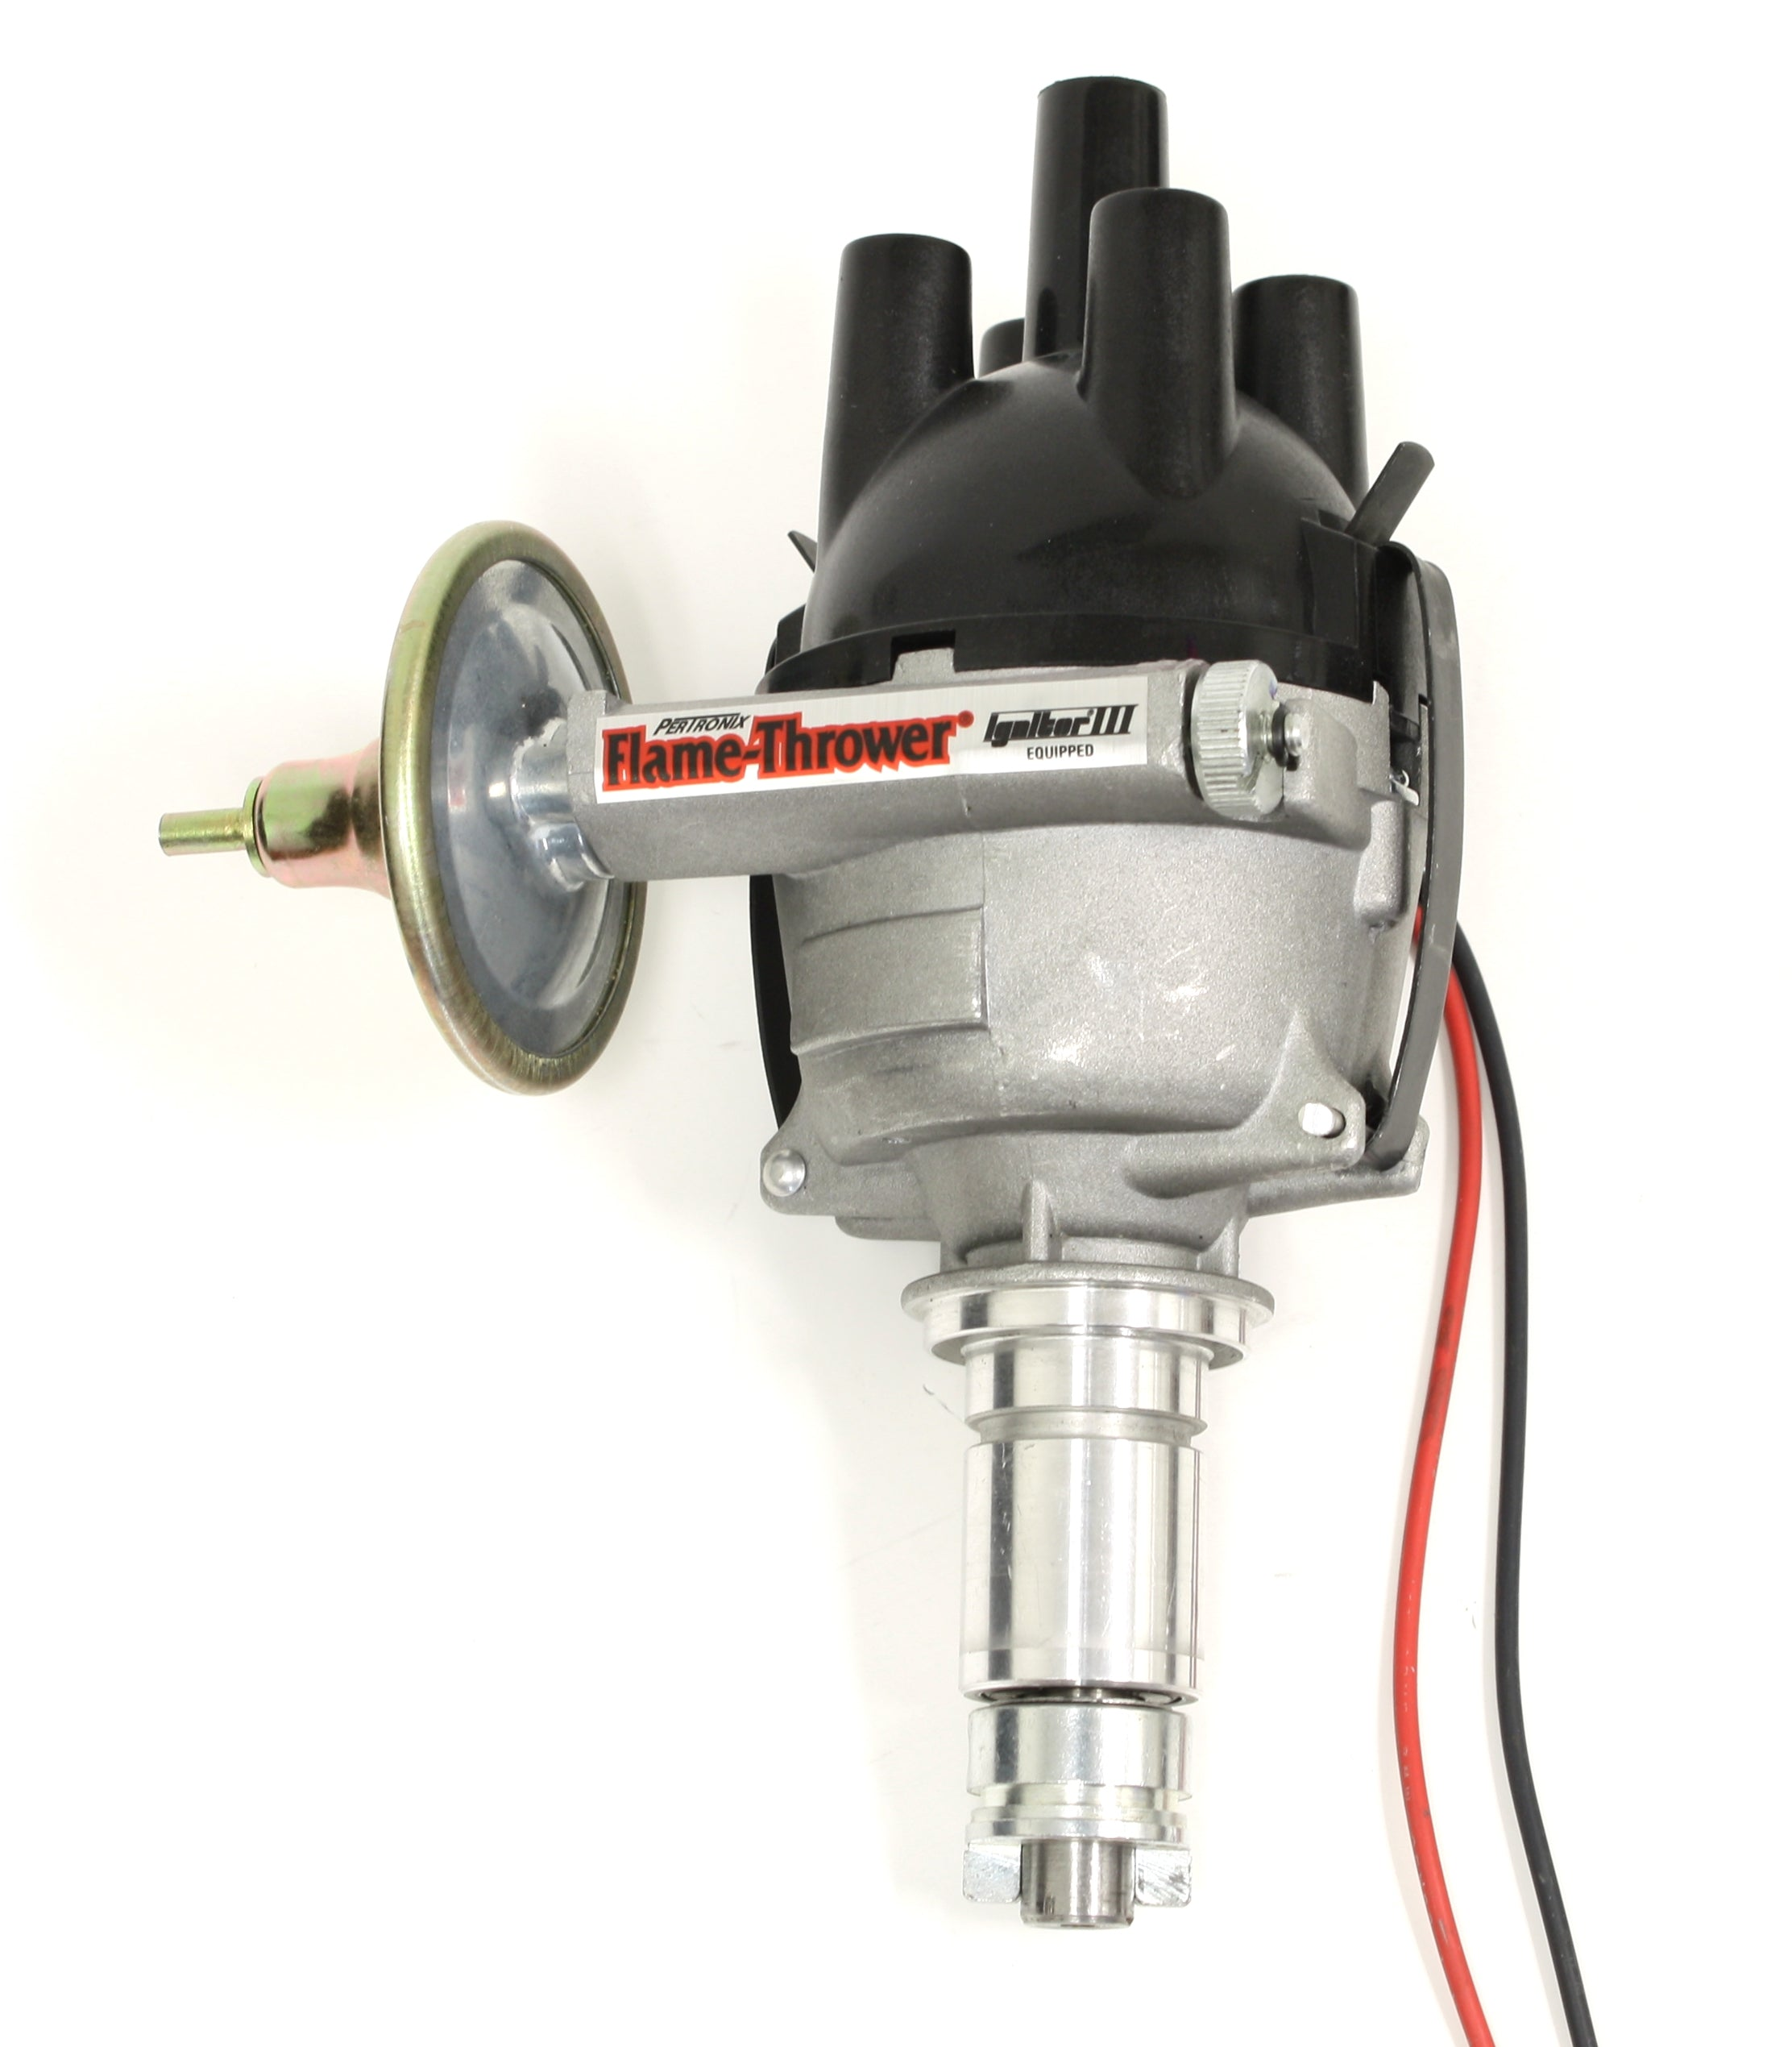 PerTronix D7173420 Flame-Thrower Electronic Distributor Top Exit Cast British 23D Plug and Play with Ignitor III Vac Adv